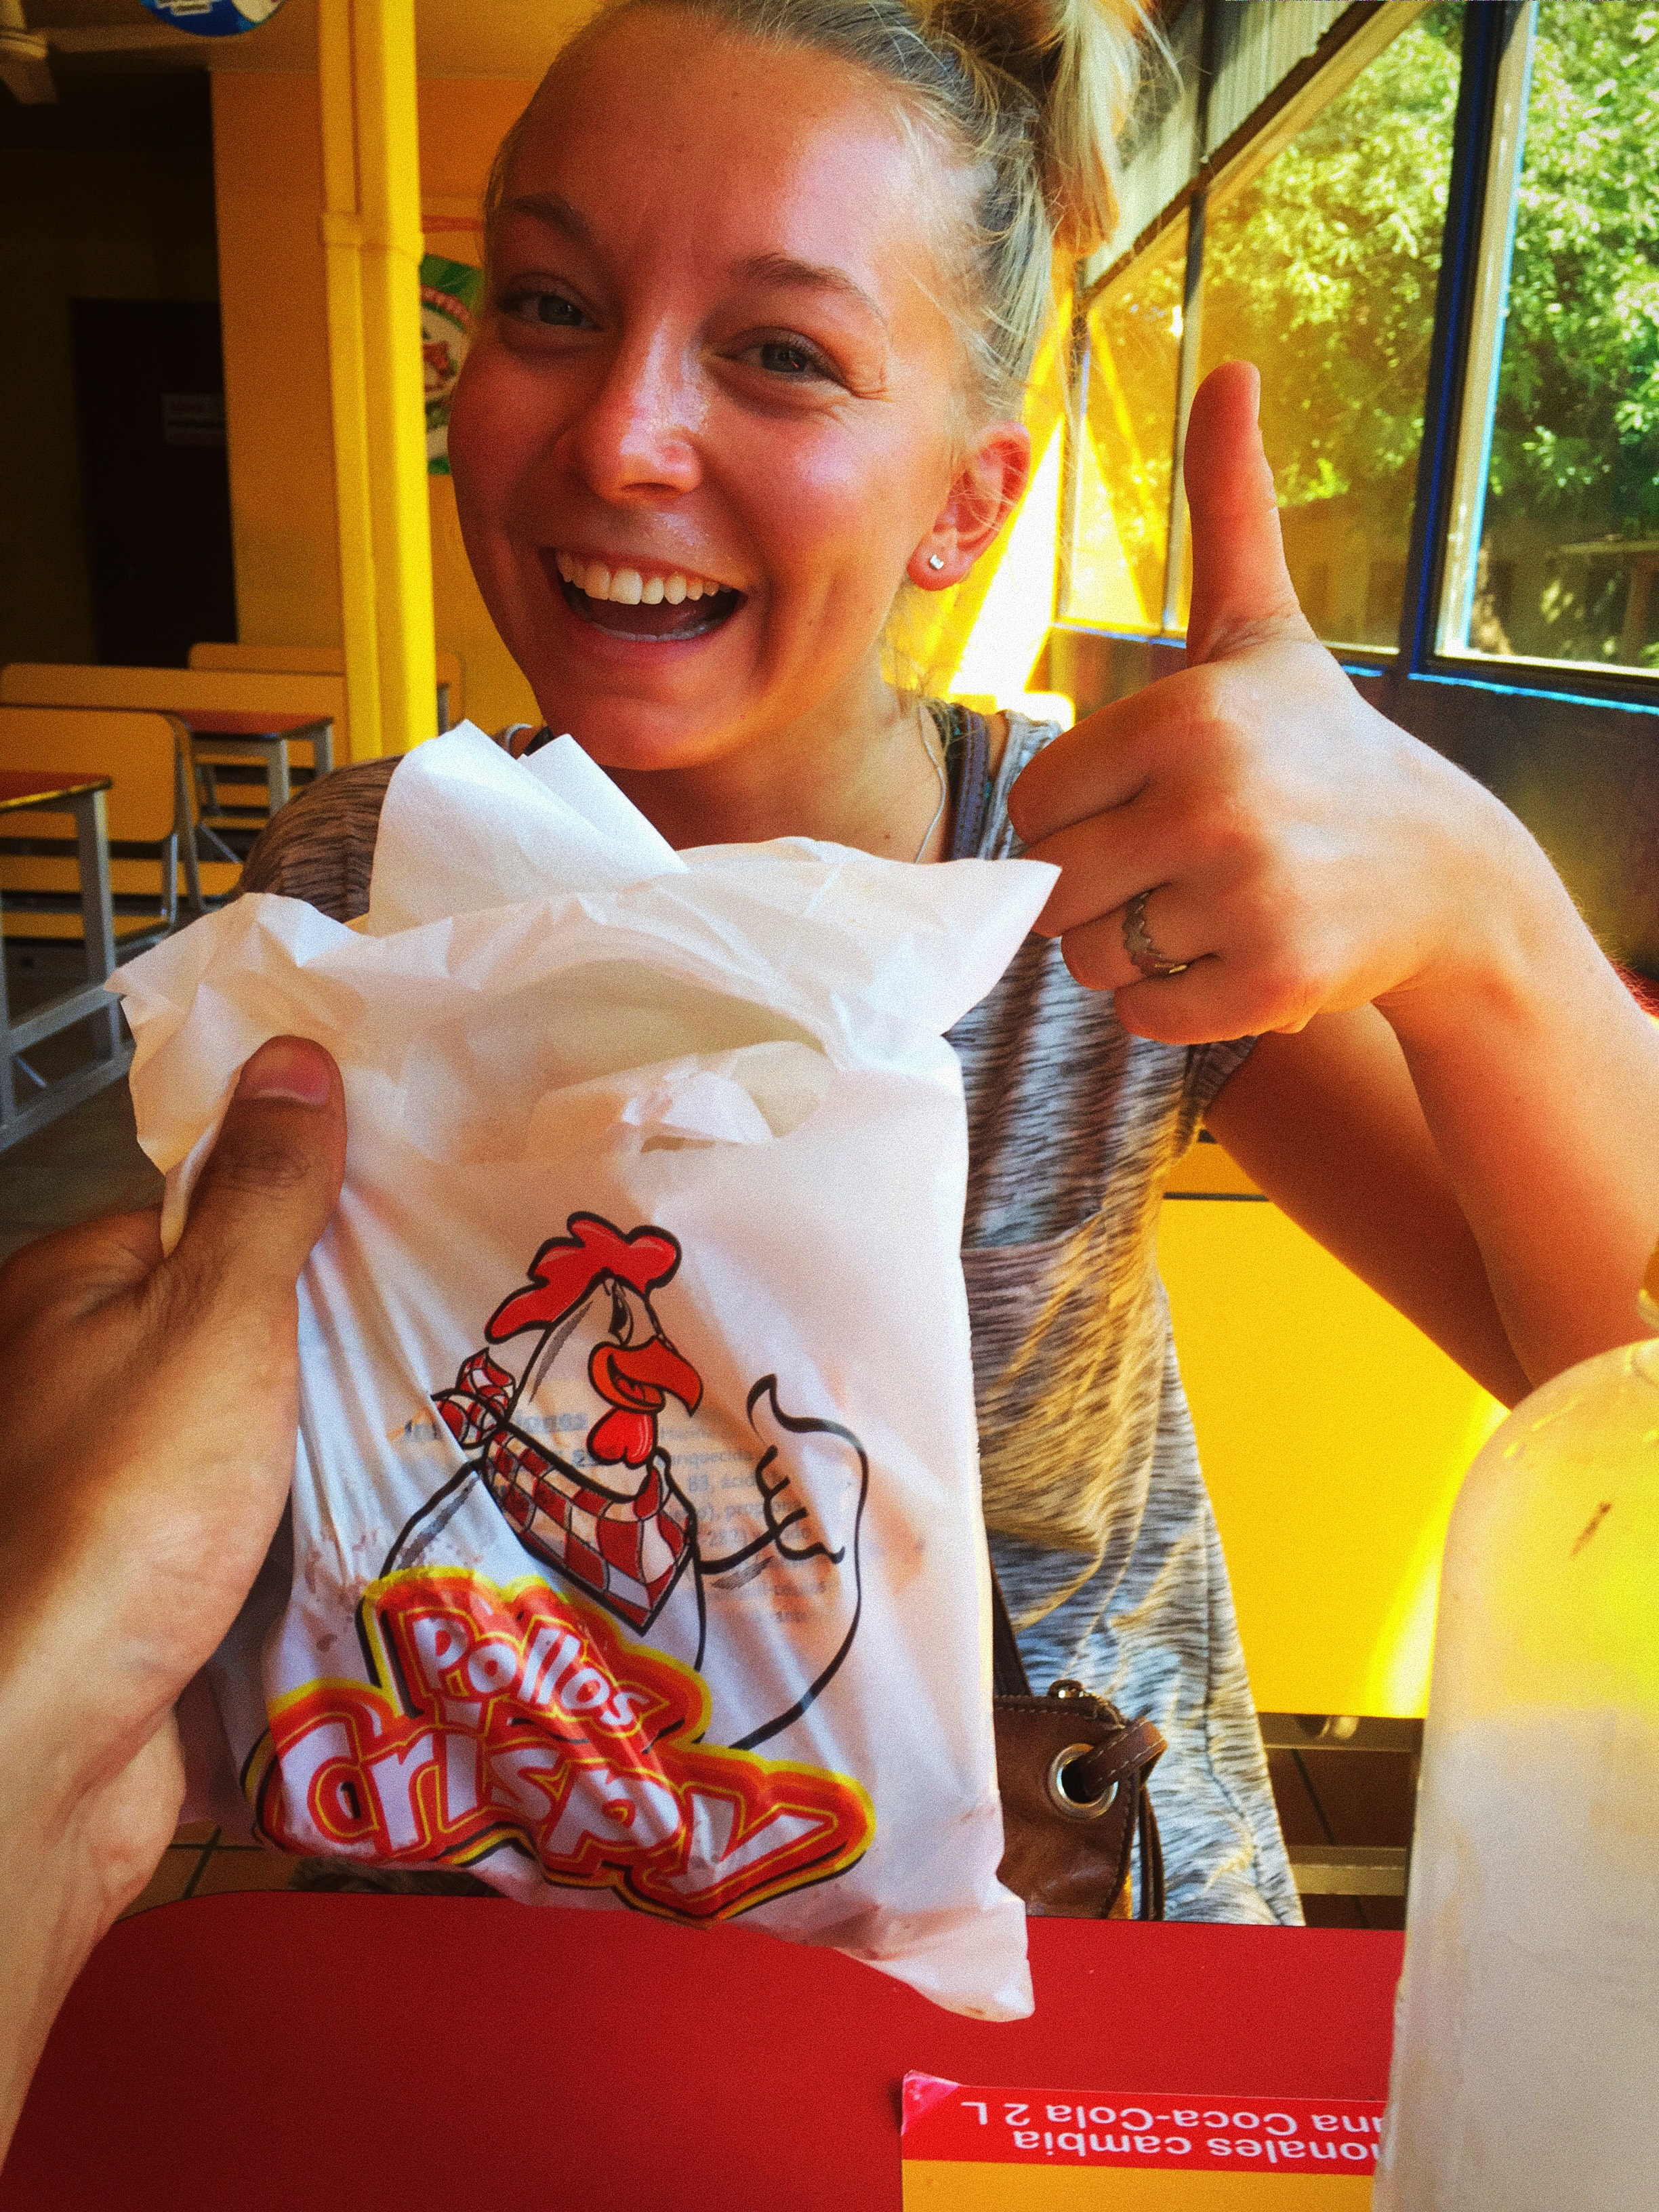 BONUS IPHONE PHOTO: All across Central America Danielle and I had seen an uncountable amount of fried chicken chains. While with Jaylor I'd mentioned this and we decided we needed to try some. Although Jaylor and Danielle and I never tried them together, the day after Jaylor left us we finally caved and tried some in Playa del Coco; specifically, Pollos Crispy. Solid 7/10.